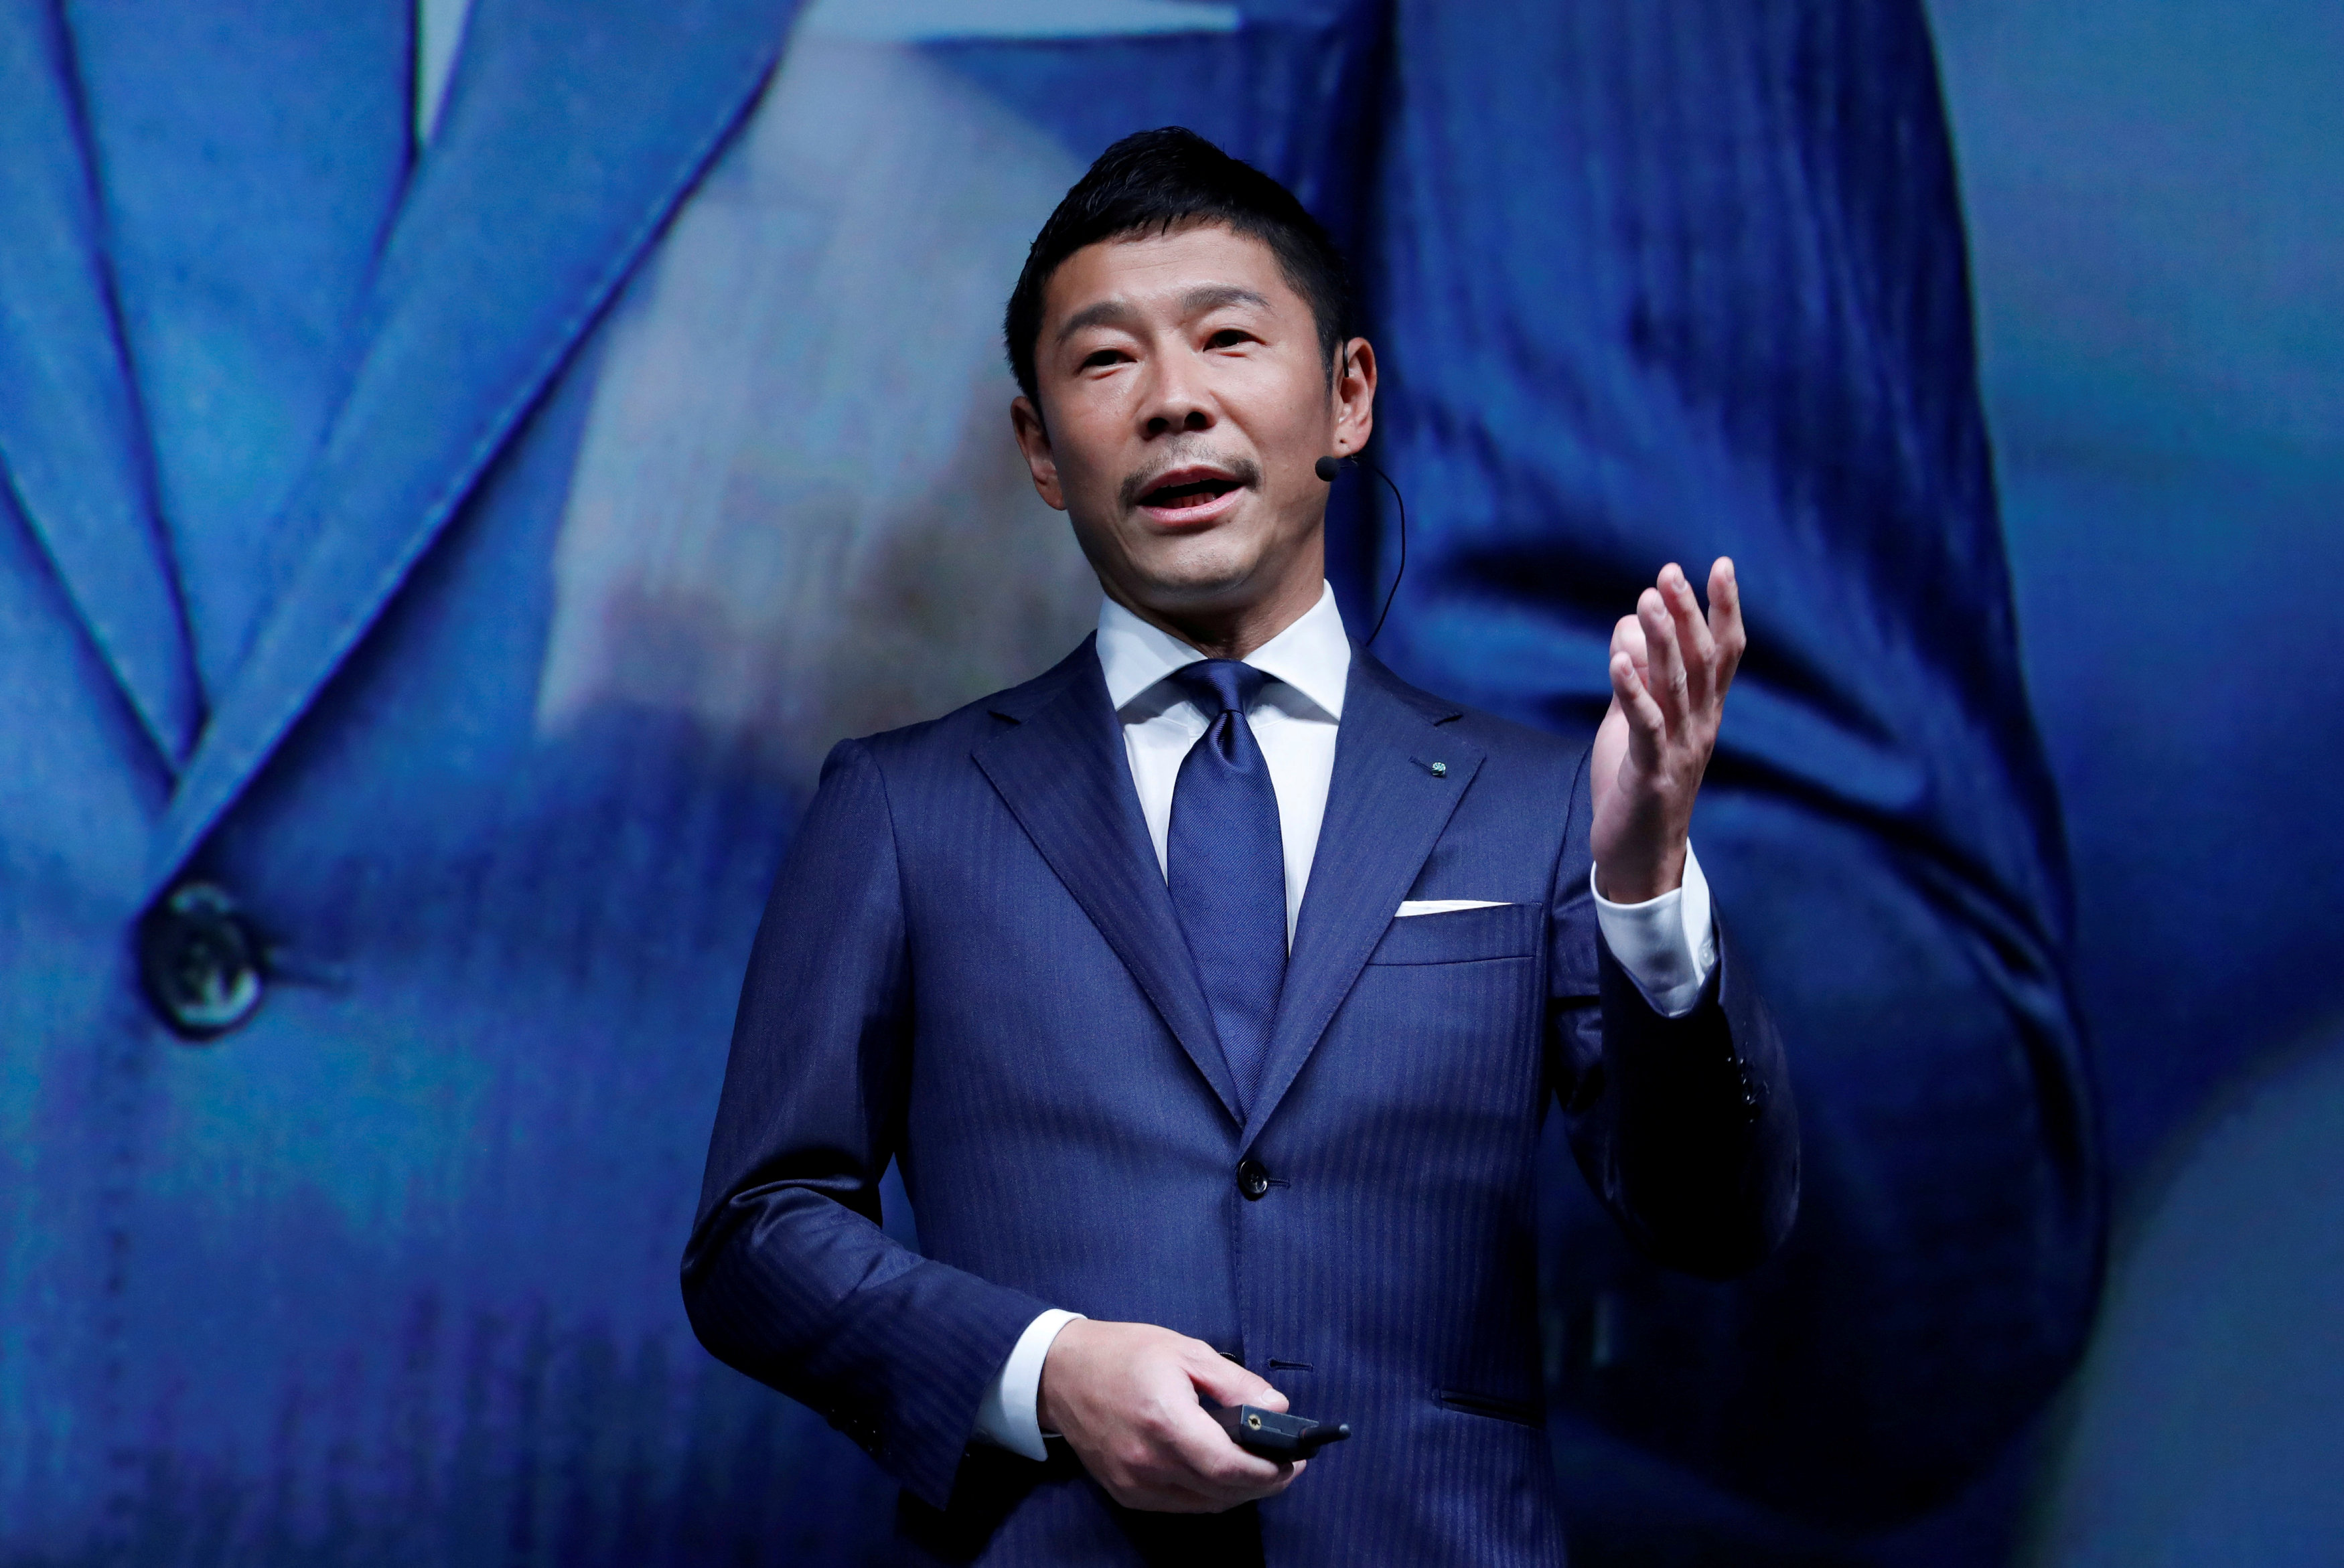 FILE PHOTO: Yusaku Maezawa, the chief executive of Zozo, which operates Japan's popular fashion shopping site Zozotown and is officially called Start Today Co, speaks at an event launching the debut of its formal apparel items, in Tokyo, Japan, July 3, 2018. REUTERS/Kim Kyung-Hoon/File Photo